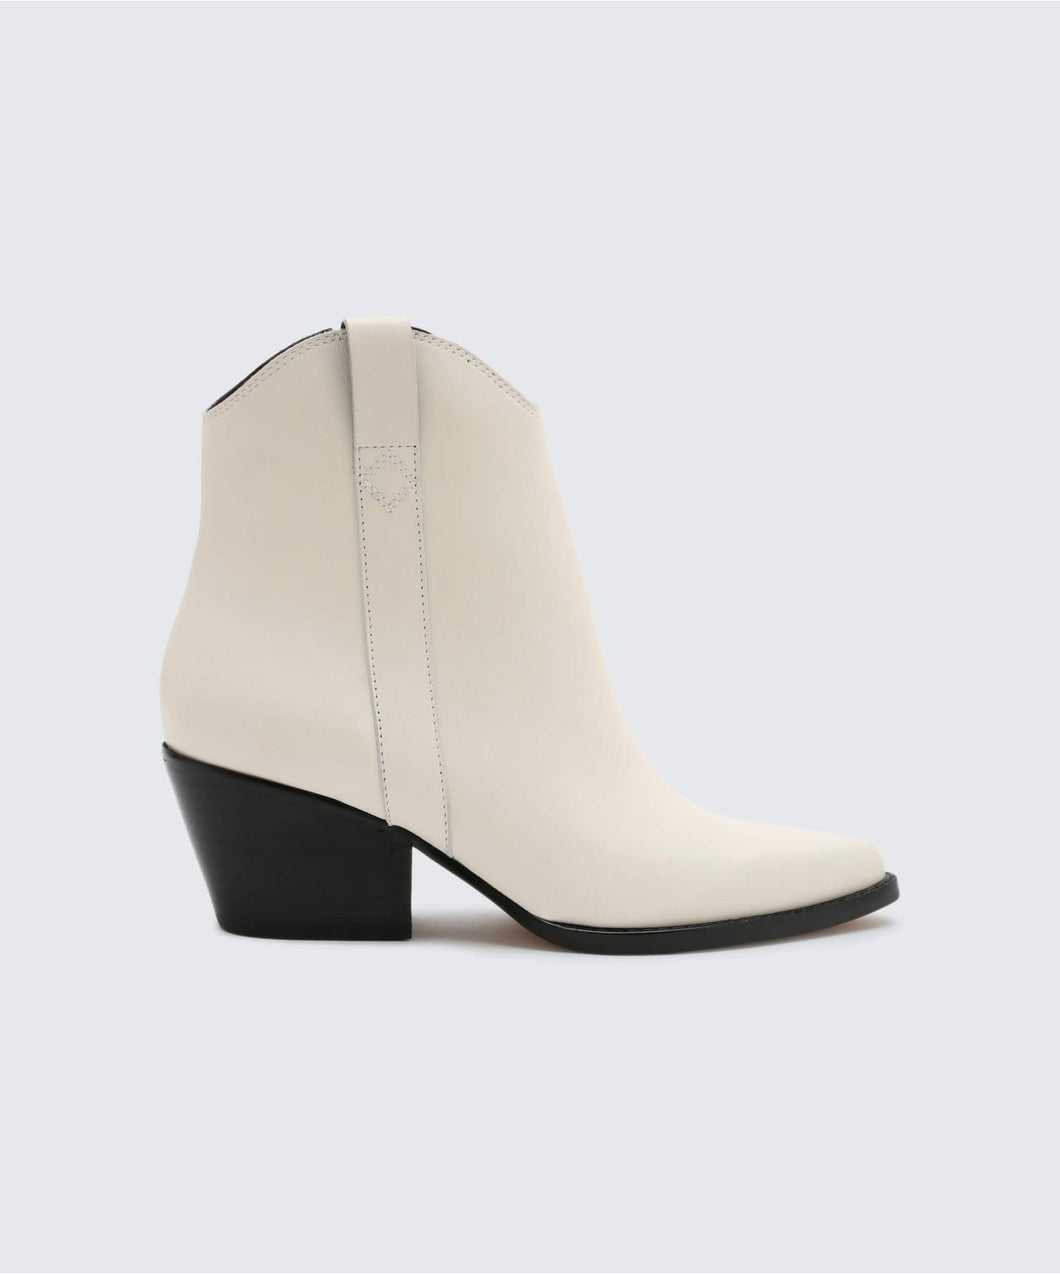 SERRA BOOTIES IN OFF WHITE -   Dolce Vita